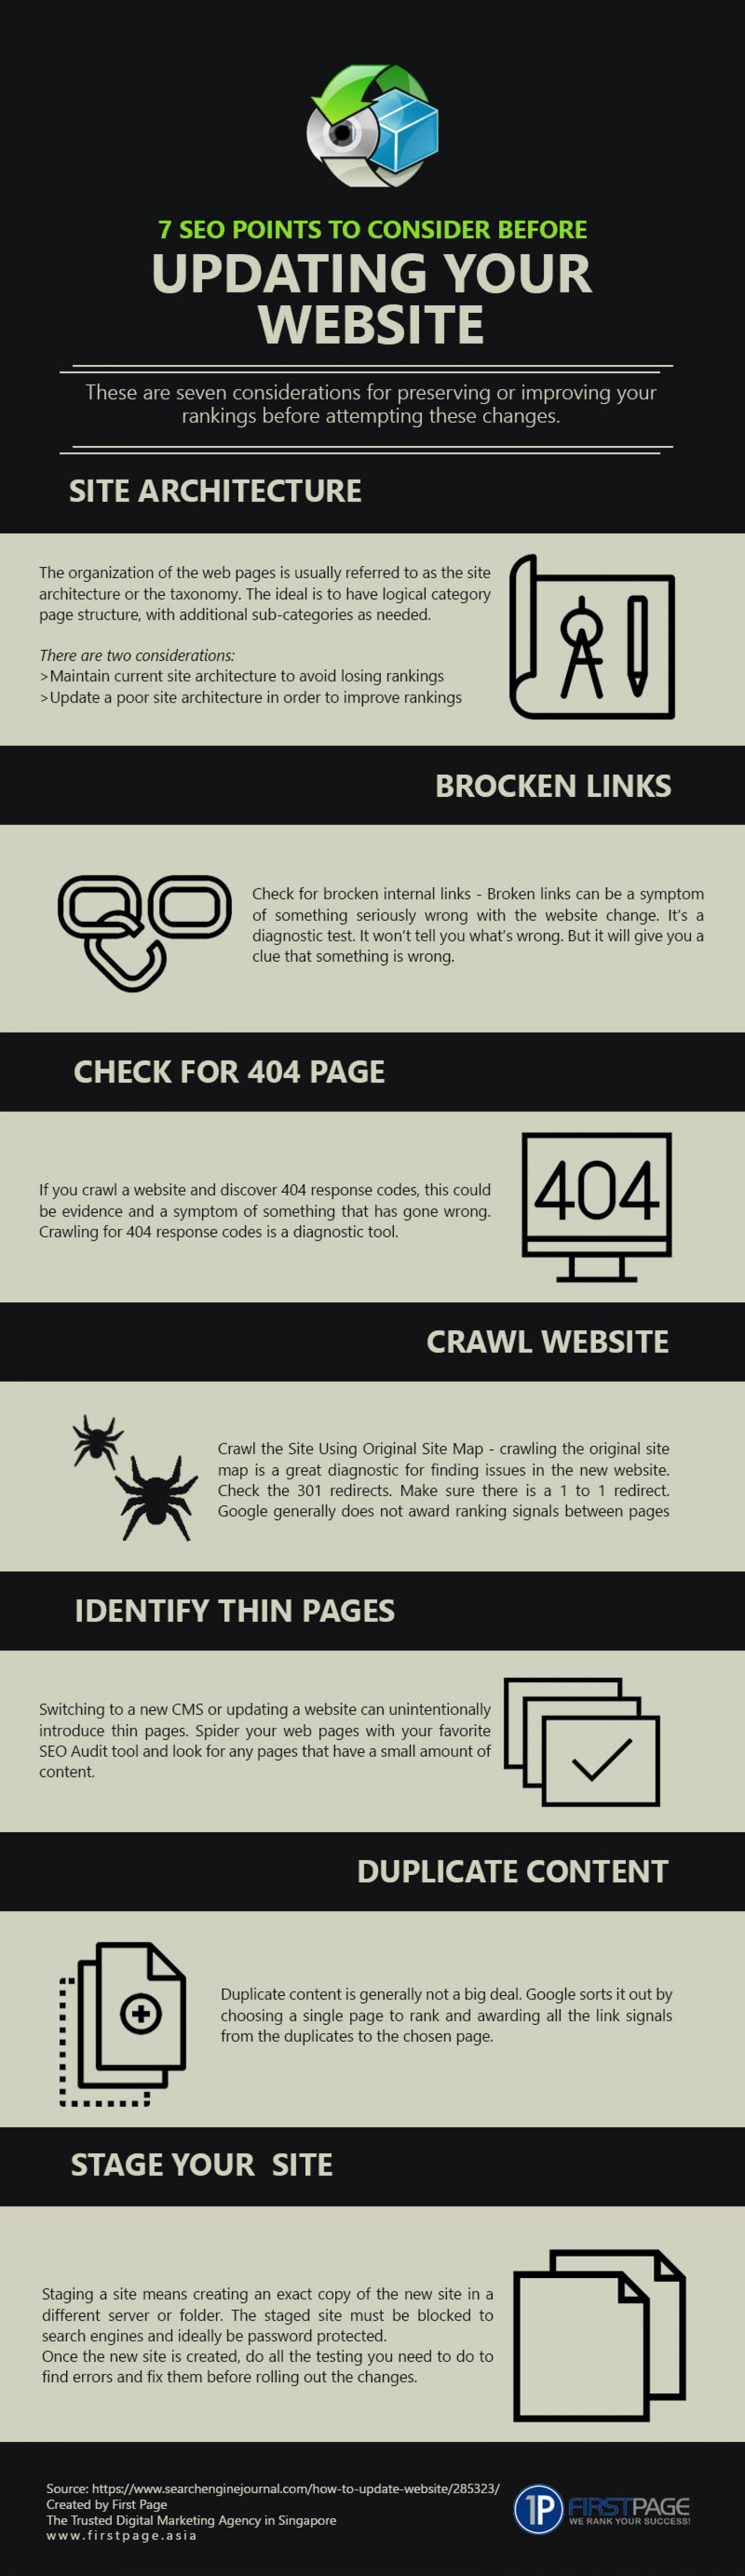 7 SEO Points to Consider Before Updating Your Website Infographic